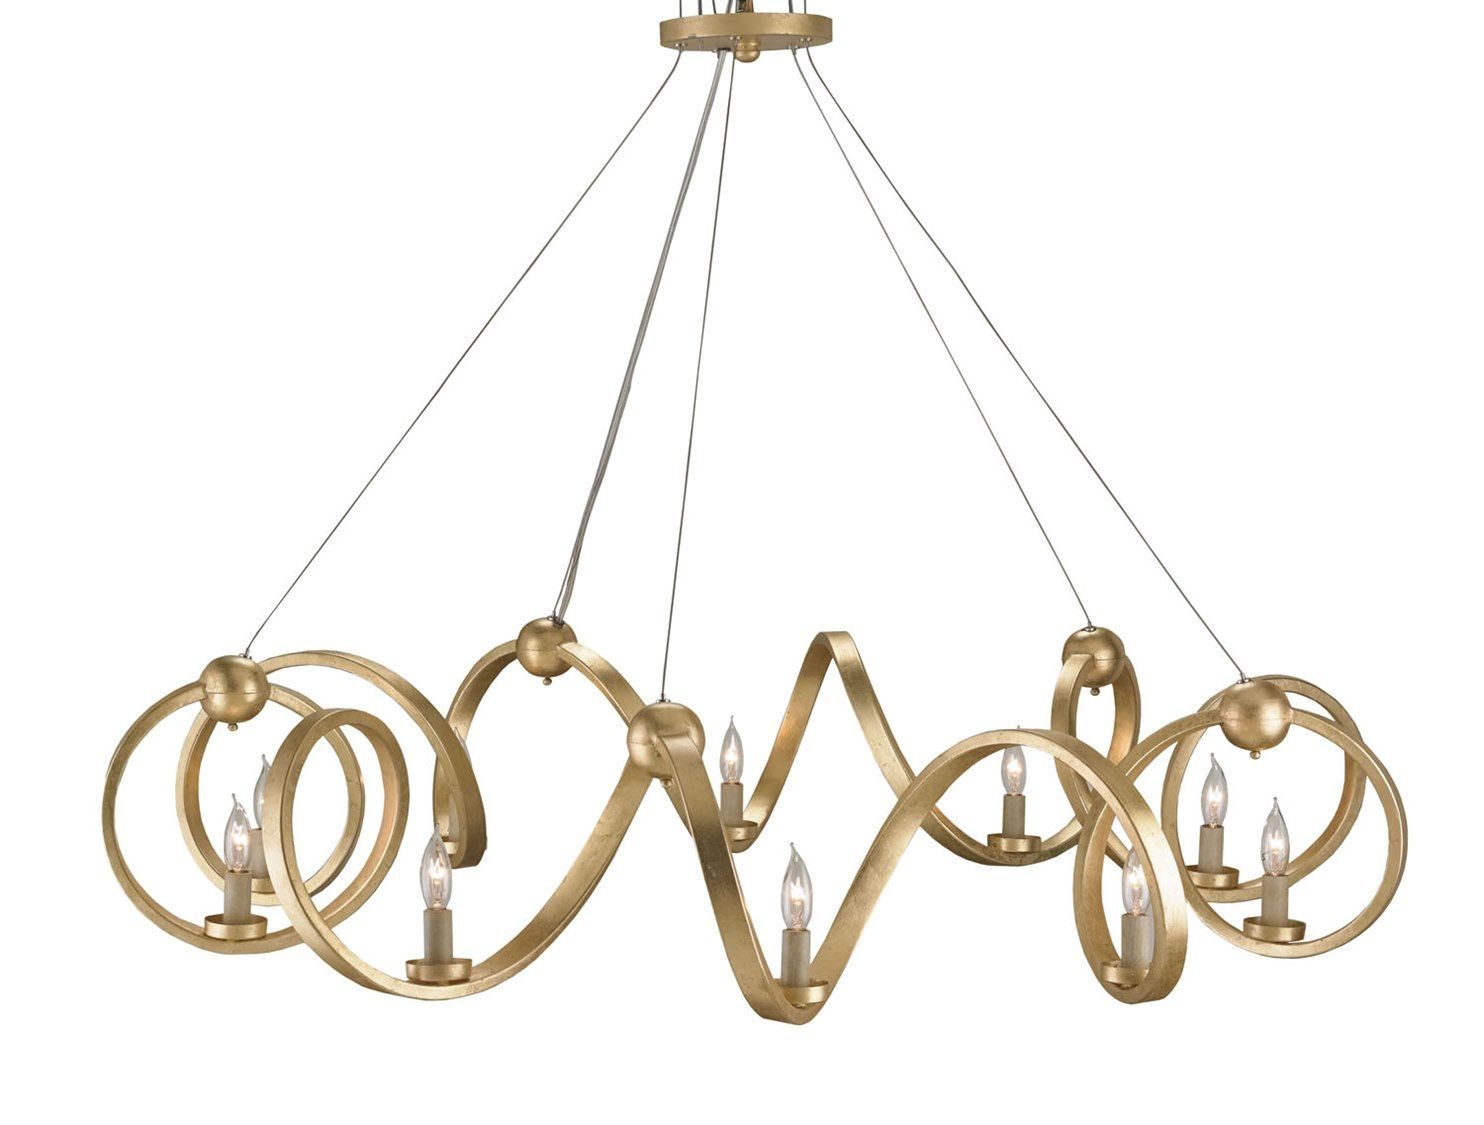 Currey And Company Lighting Currey Chandeliers Sale Geometric Chandelier Candelabra Chandeliers Contemporary Chandelier